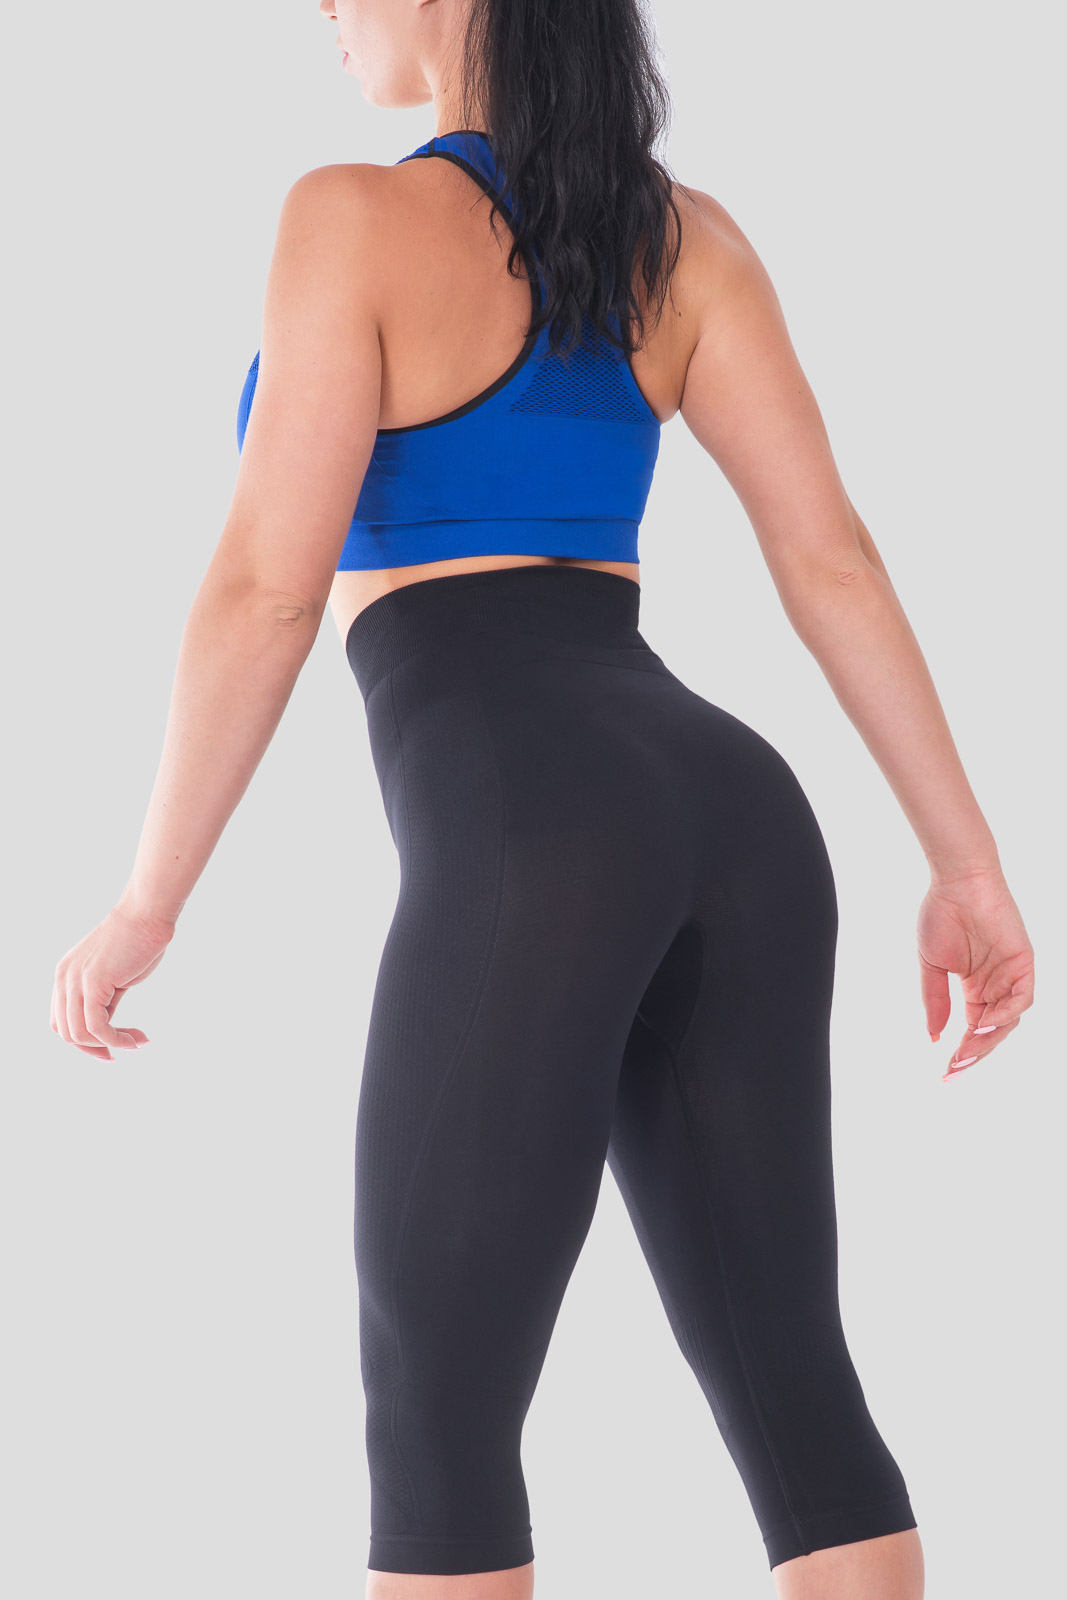 Bellissima-Women-039-s-Capri-Yoga-Pants-Seamless-High-Waisted-Workout-Leggings thumbnail 23